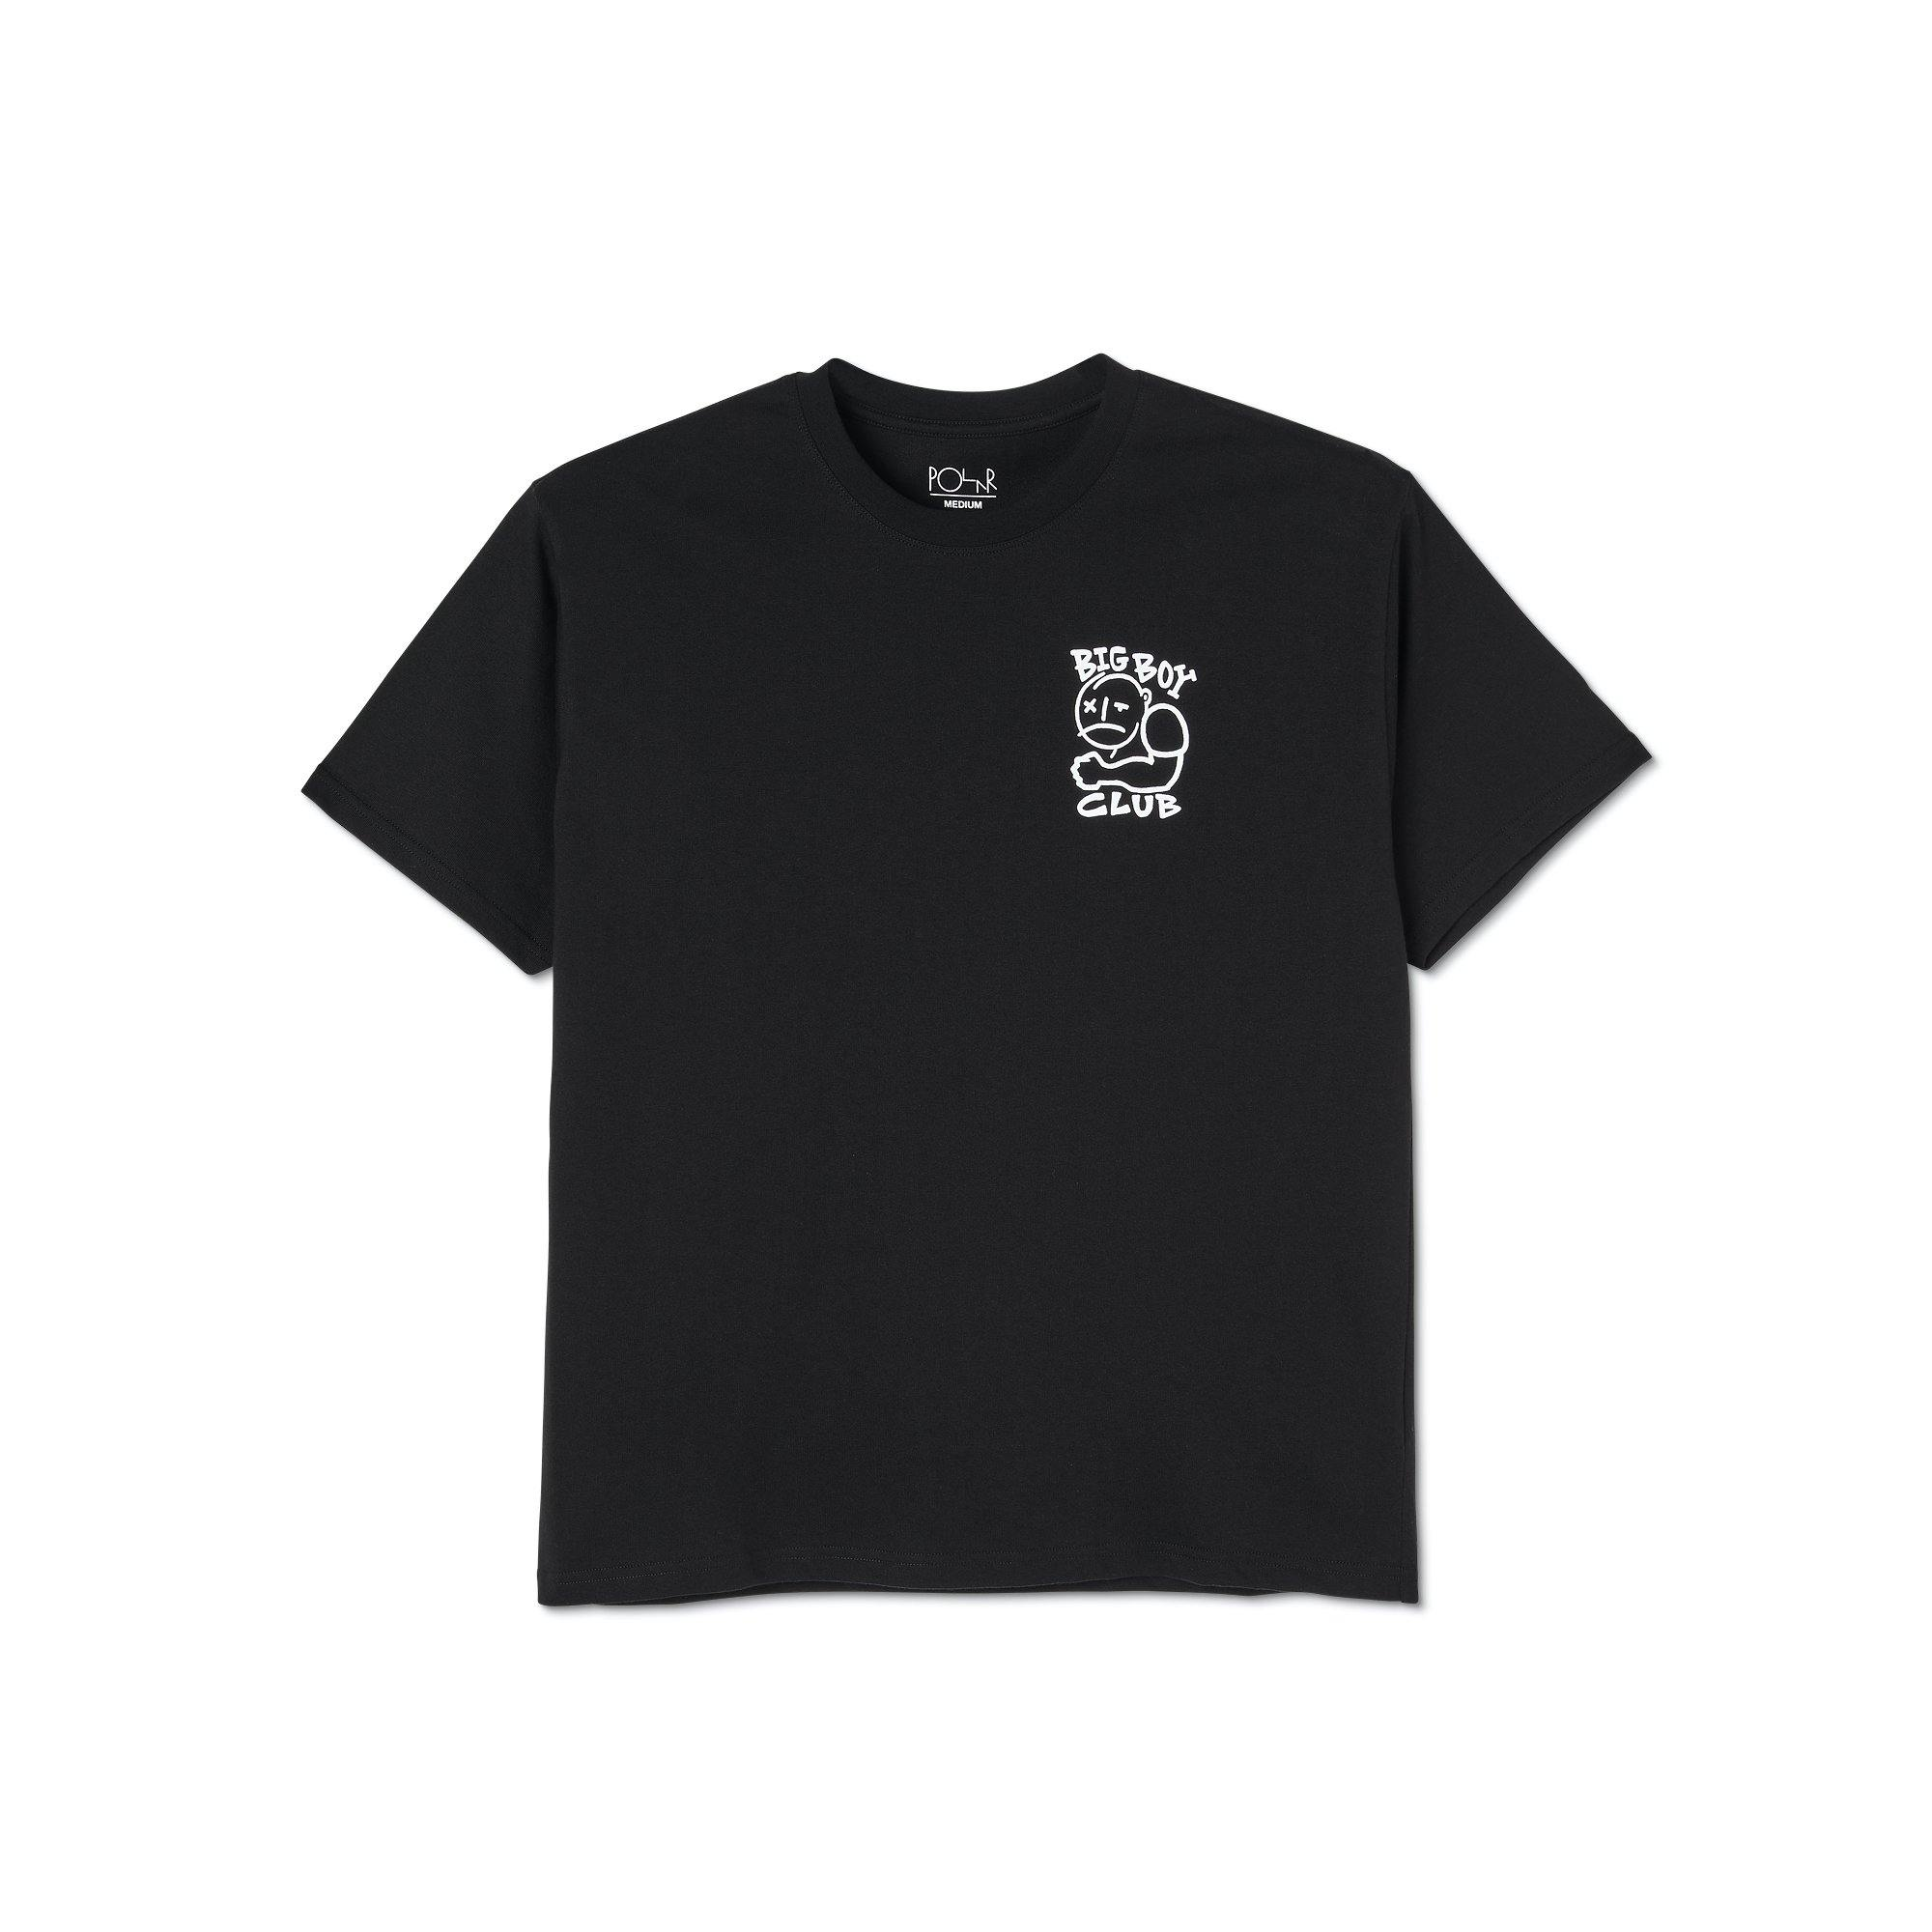 Tee Shirt POLAR Big Boy Club Black - Noir